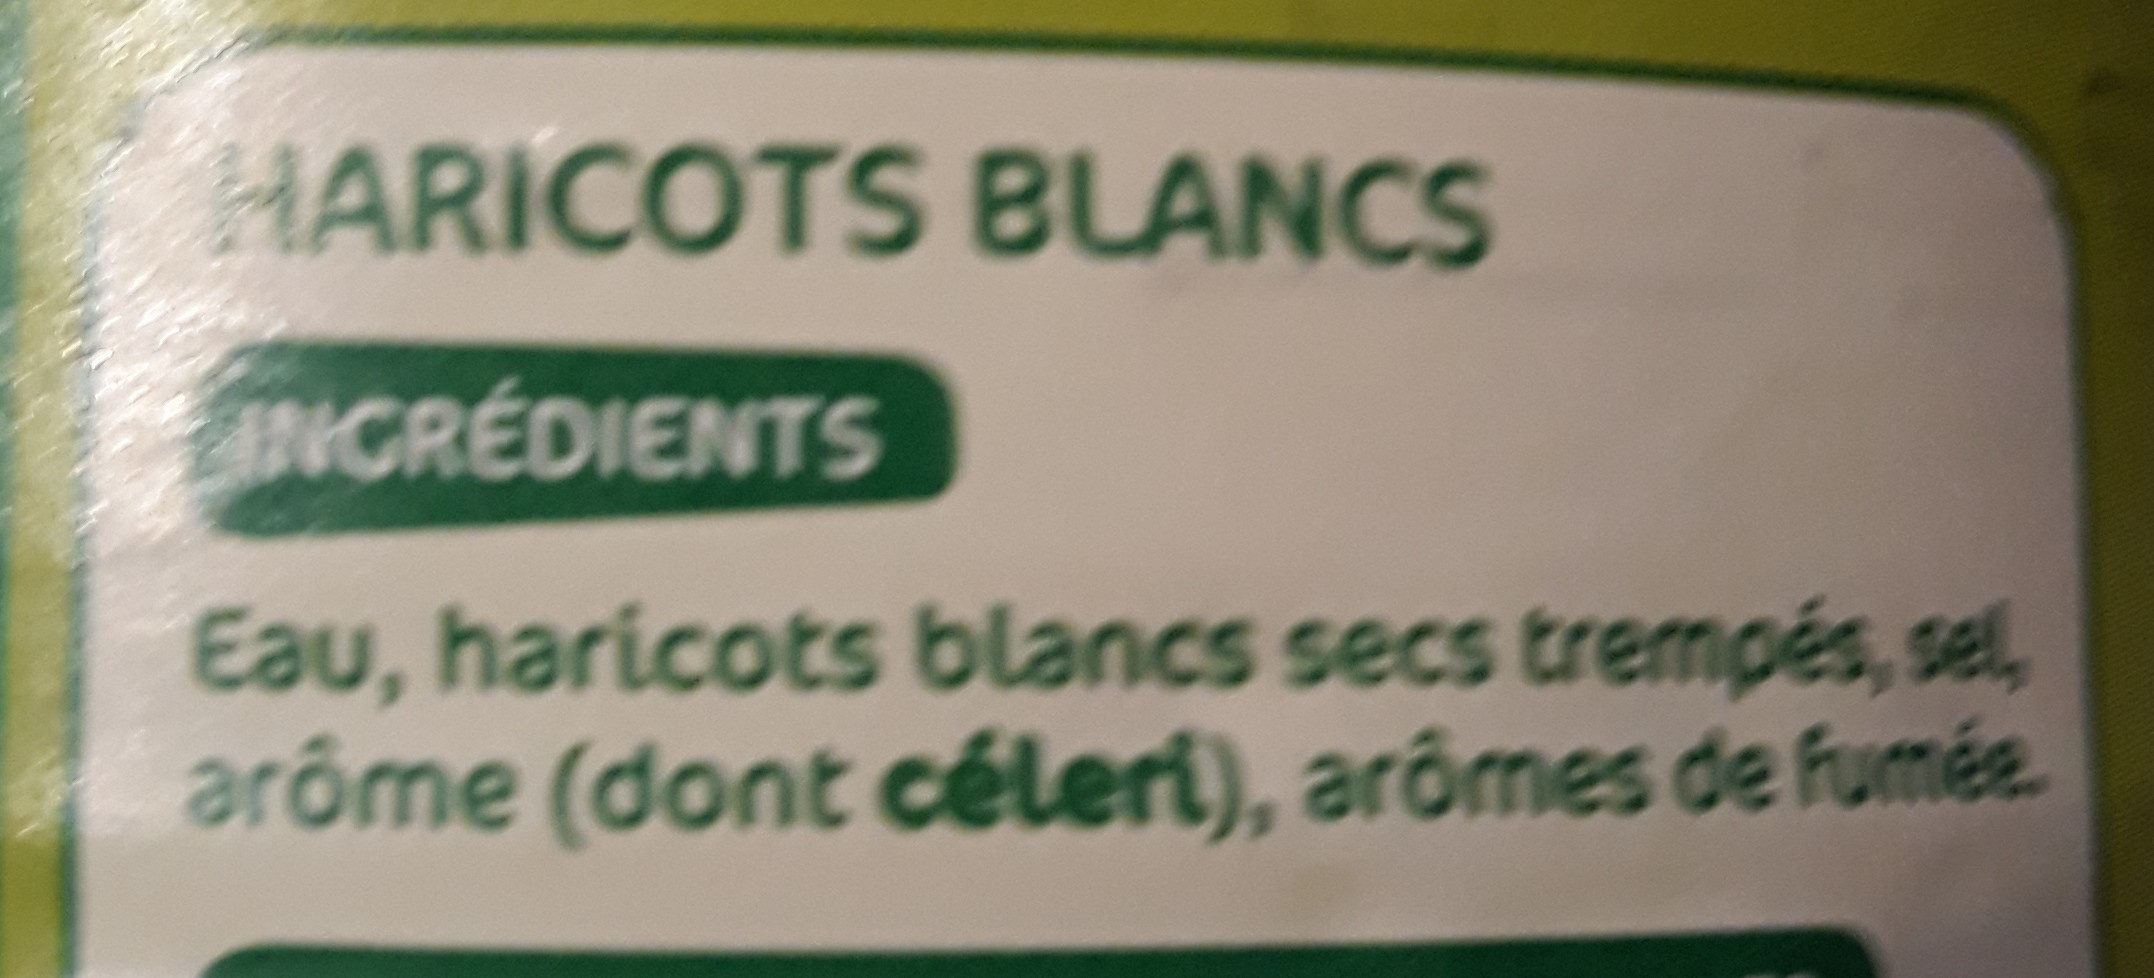 Haricots blancs 530g pne - Ingredients